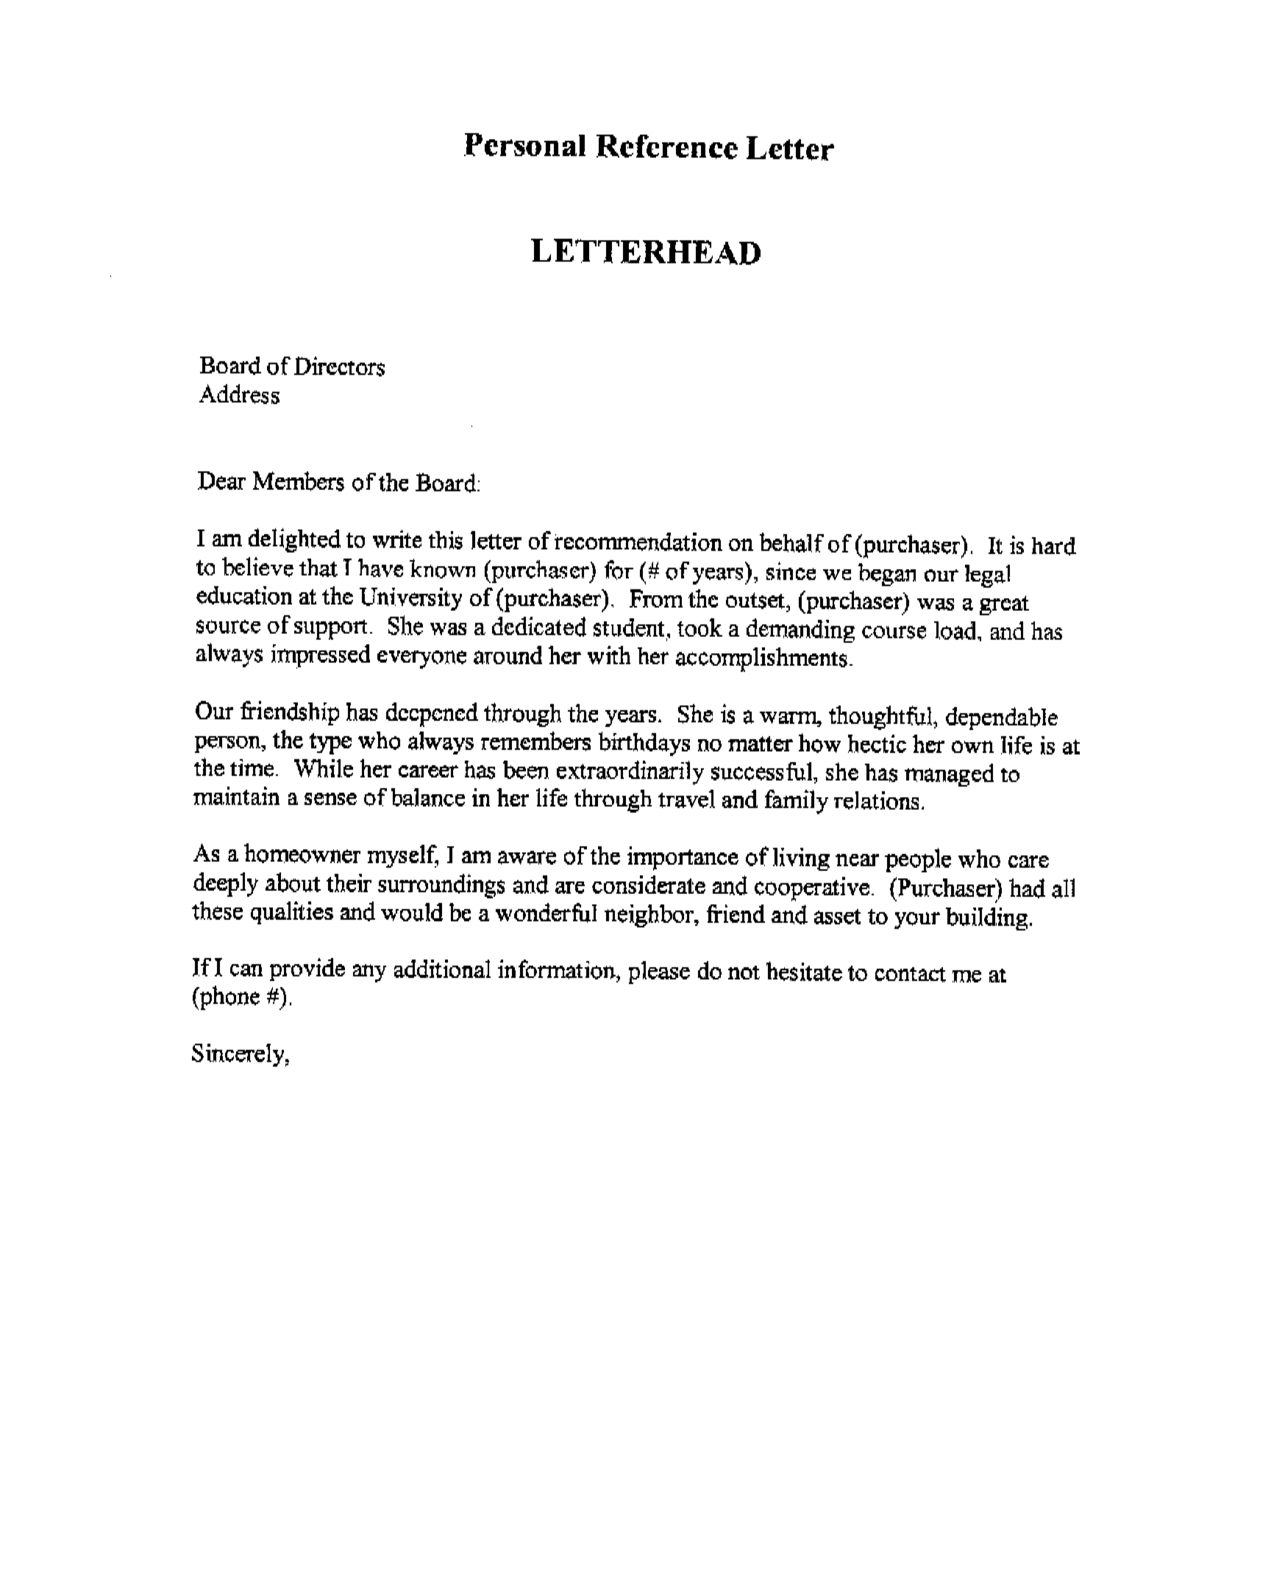 Professional recommendation letter this is an example of a professional recommendation letter this is an example of a professional recommendation written for an employee who is relocating expocarfo Gallery